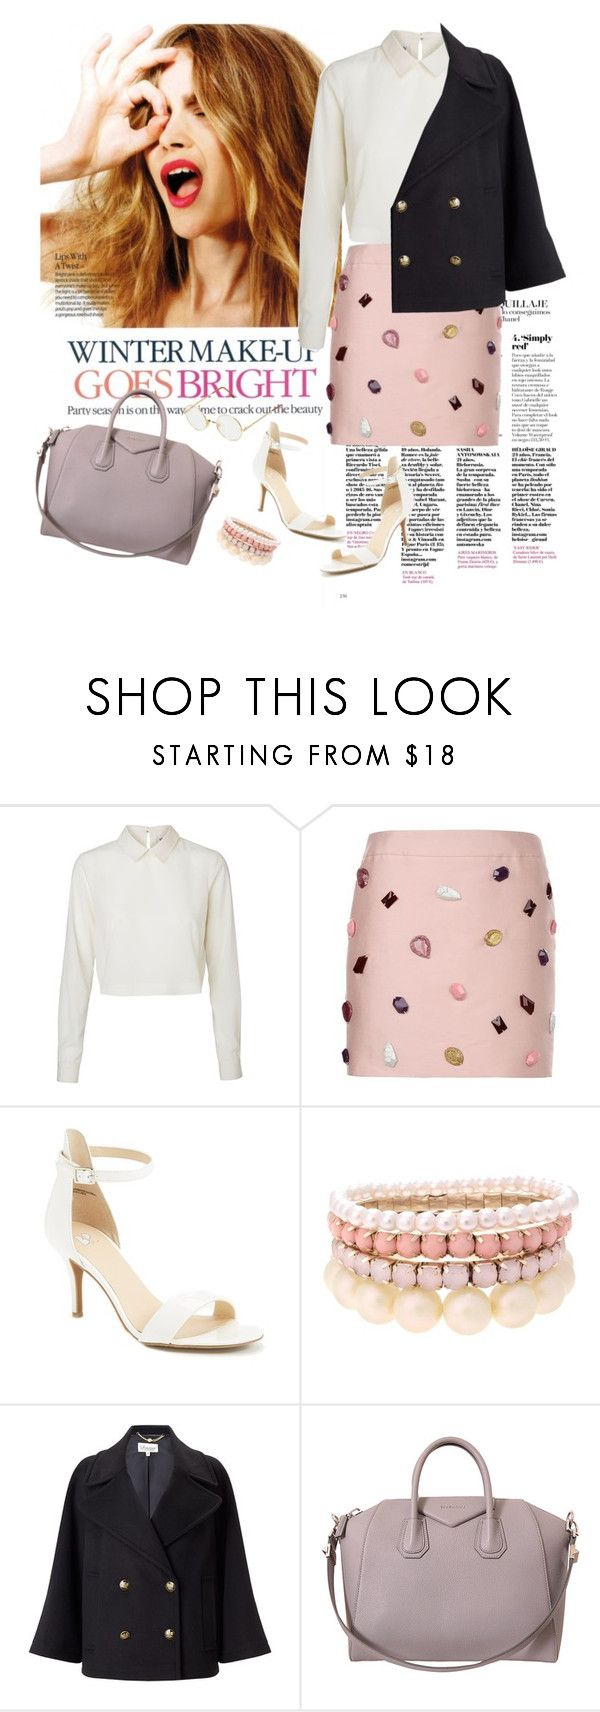 Rosè by elleandlary on Polyvore featuring moda, Vero Moda, Somerset by Alice Temperley, STELLA McCARTNEY, BP., Givenchy, Lipsy, Persol and Celestine